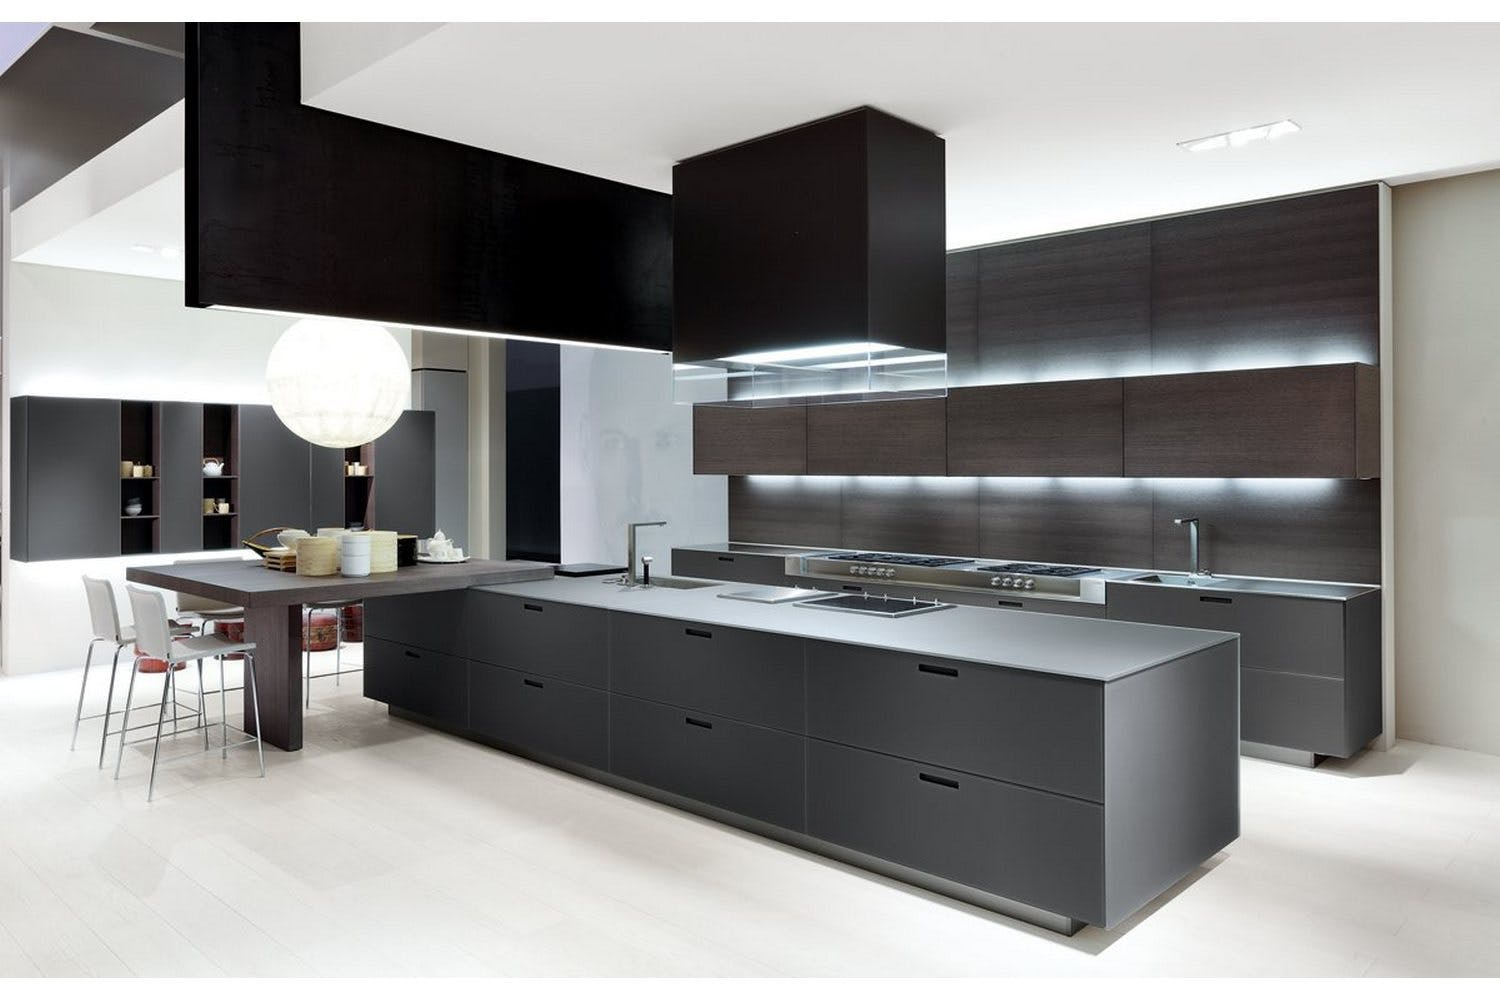 Kyton kitchen by r d varenna for poliform poliform australia for Cuisine originale